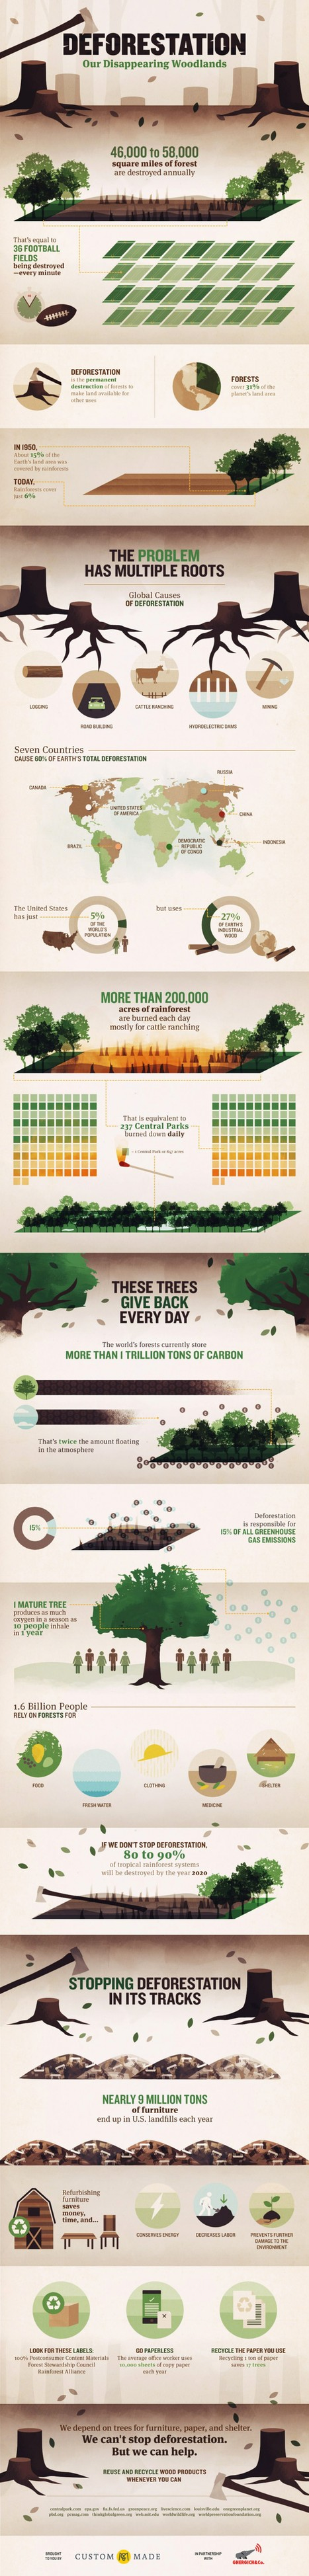 Deforestation: Our Disappearing Woodlands  - Infographic | Wellness Life | Scoop.it